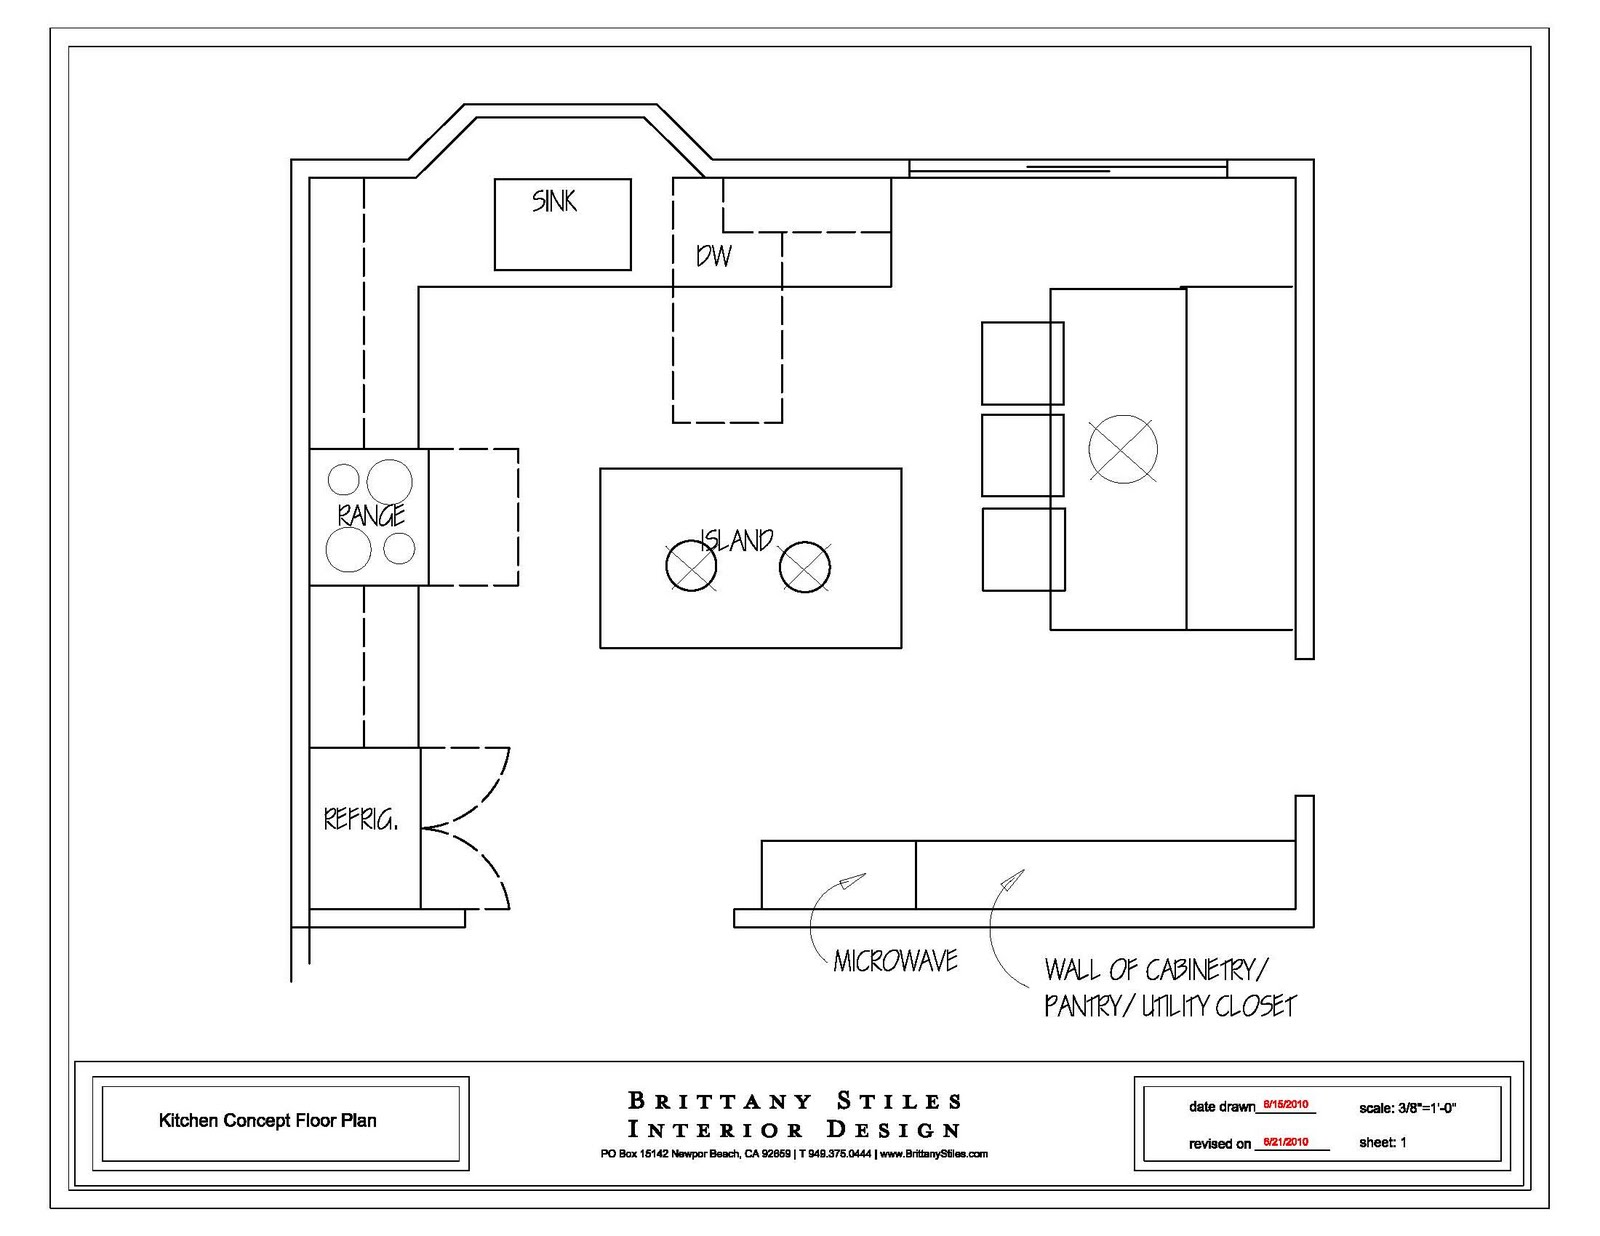 Interior Design Kitchen Drawings. Hotel Kitchen Layout Hgtv Remodels  Interior Design Drawings